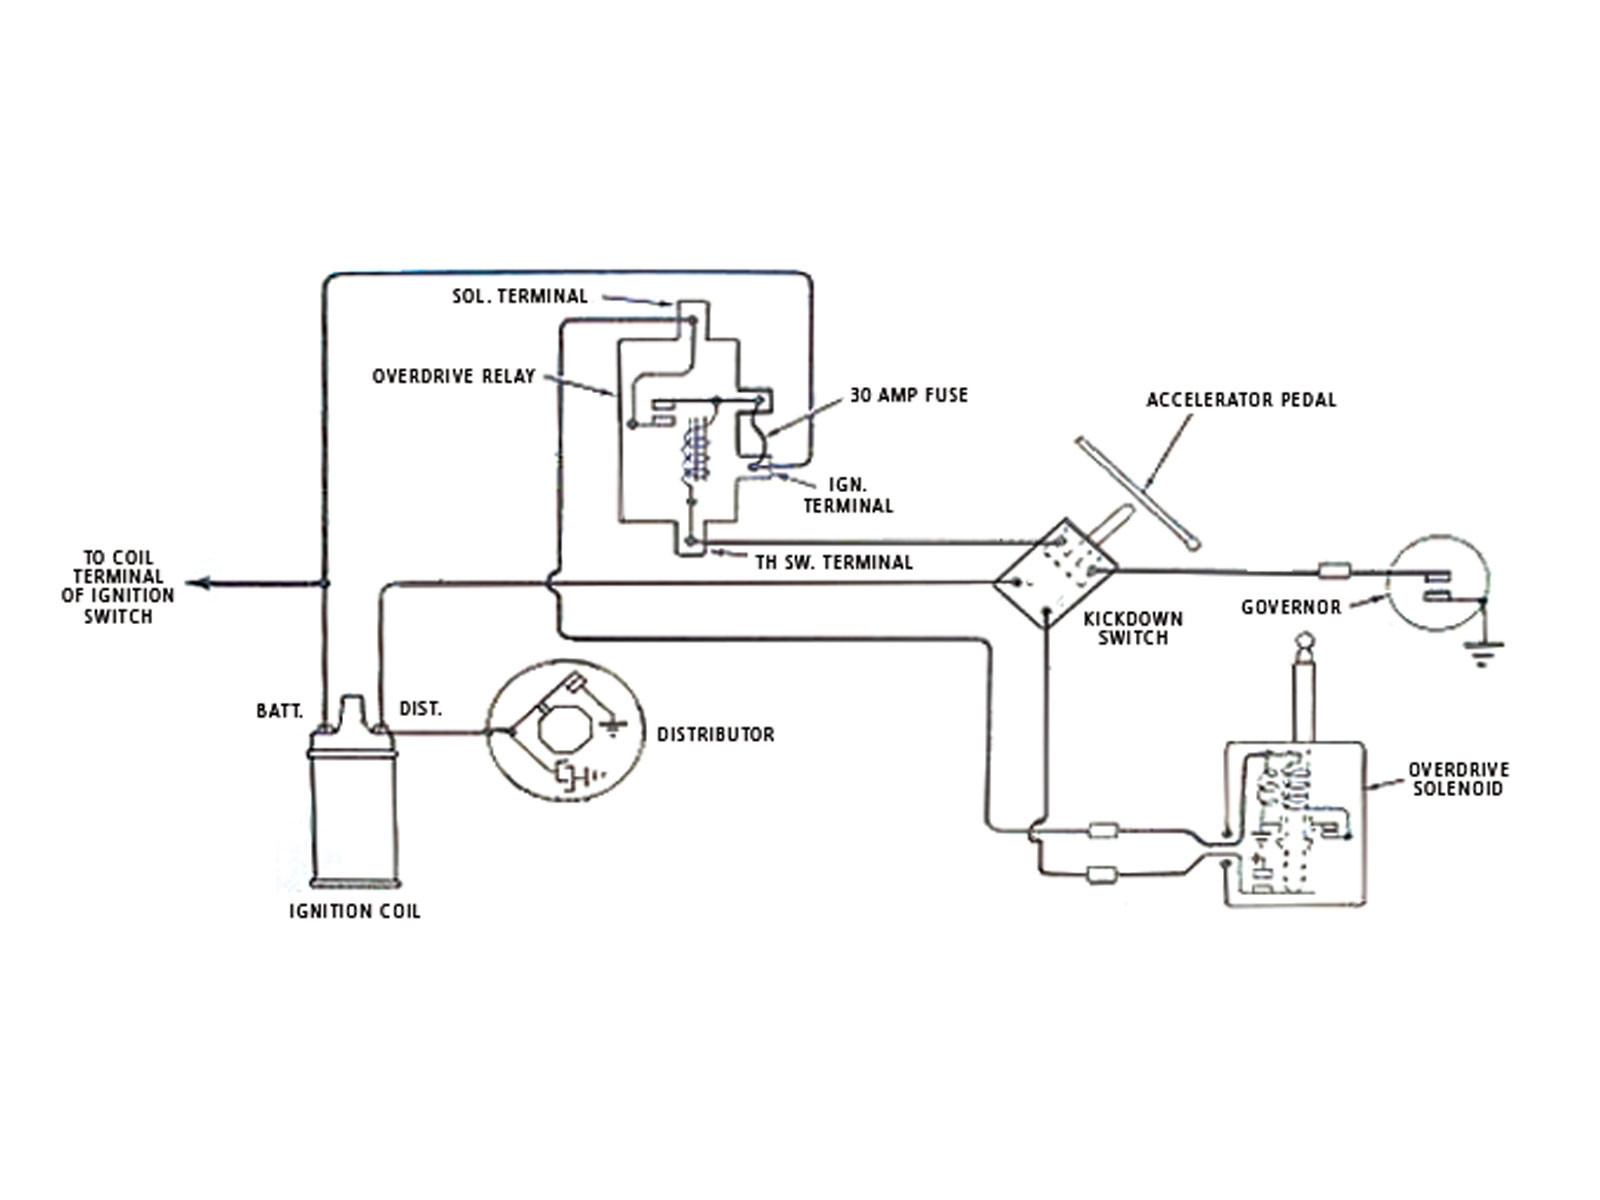 timer relay wiring diagram Collection-Wiring Diagram Timer Relay Valid Wiring Diagram Safety Relay Best Basic Od Troubleshooting Chevytalk 6-n